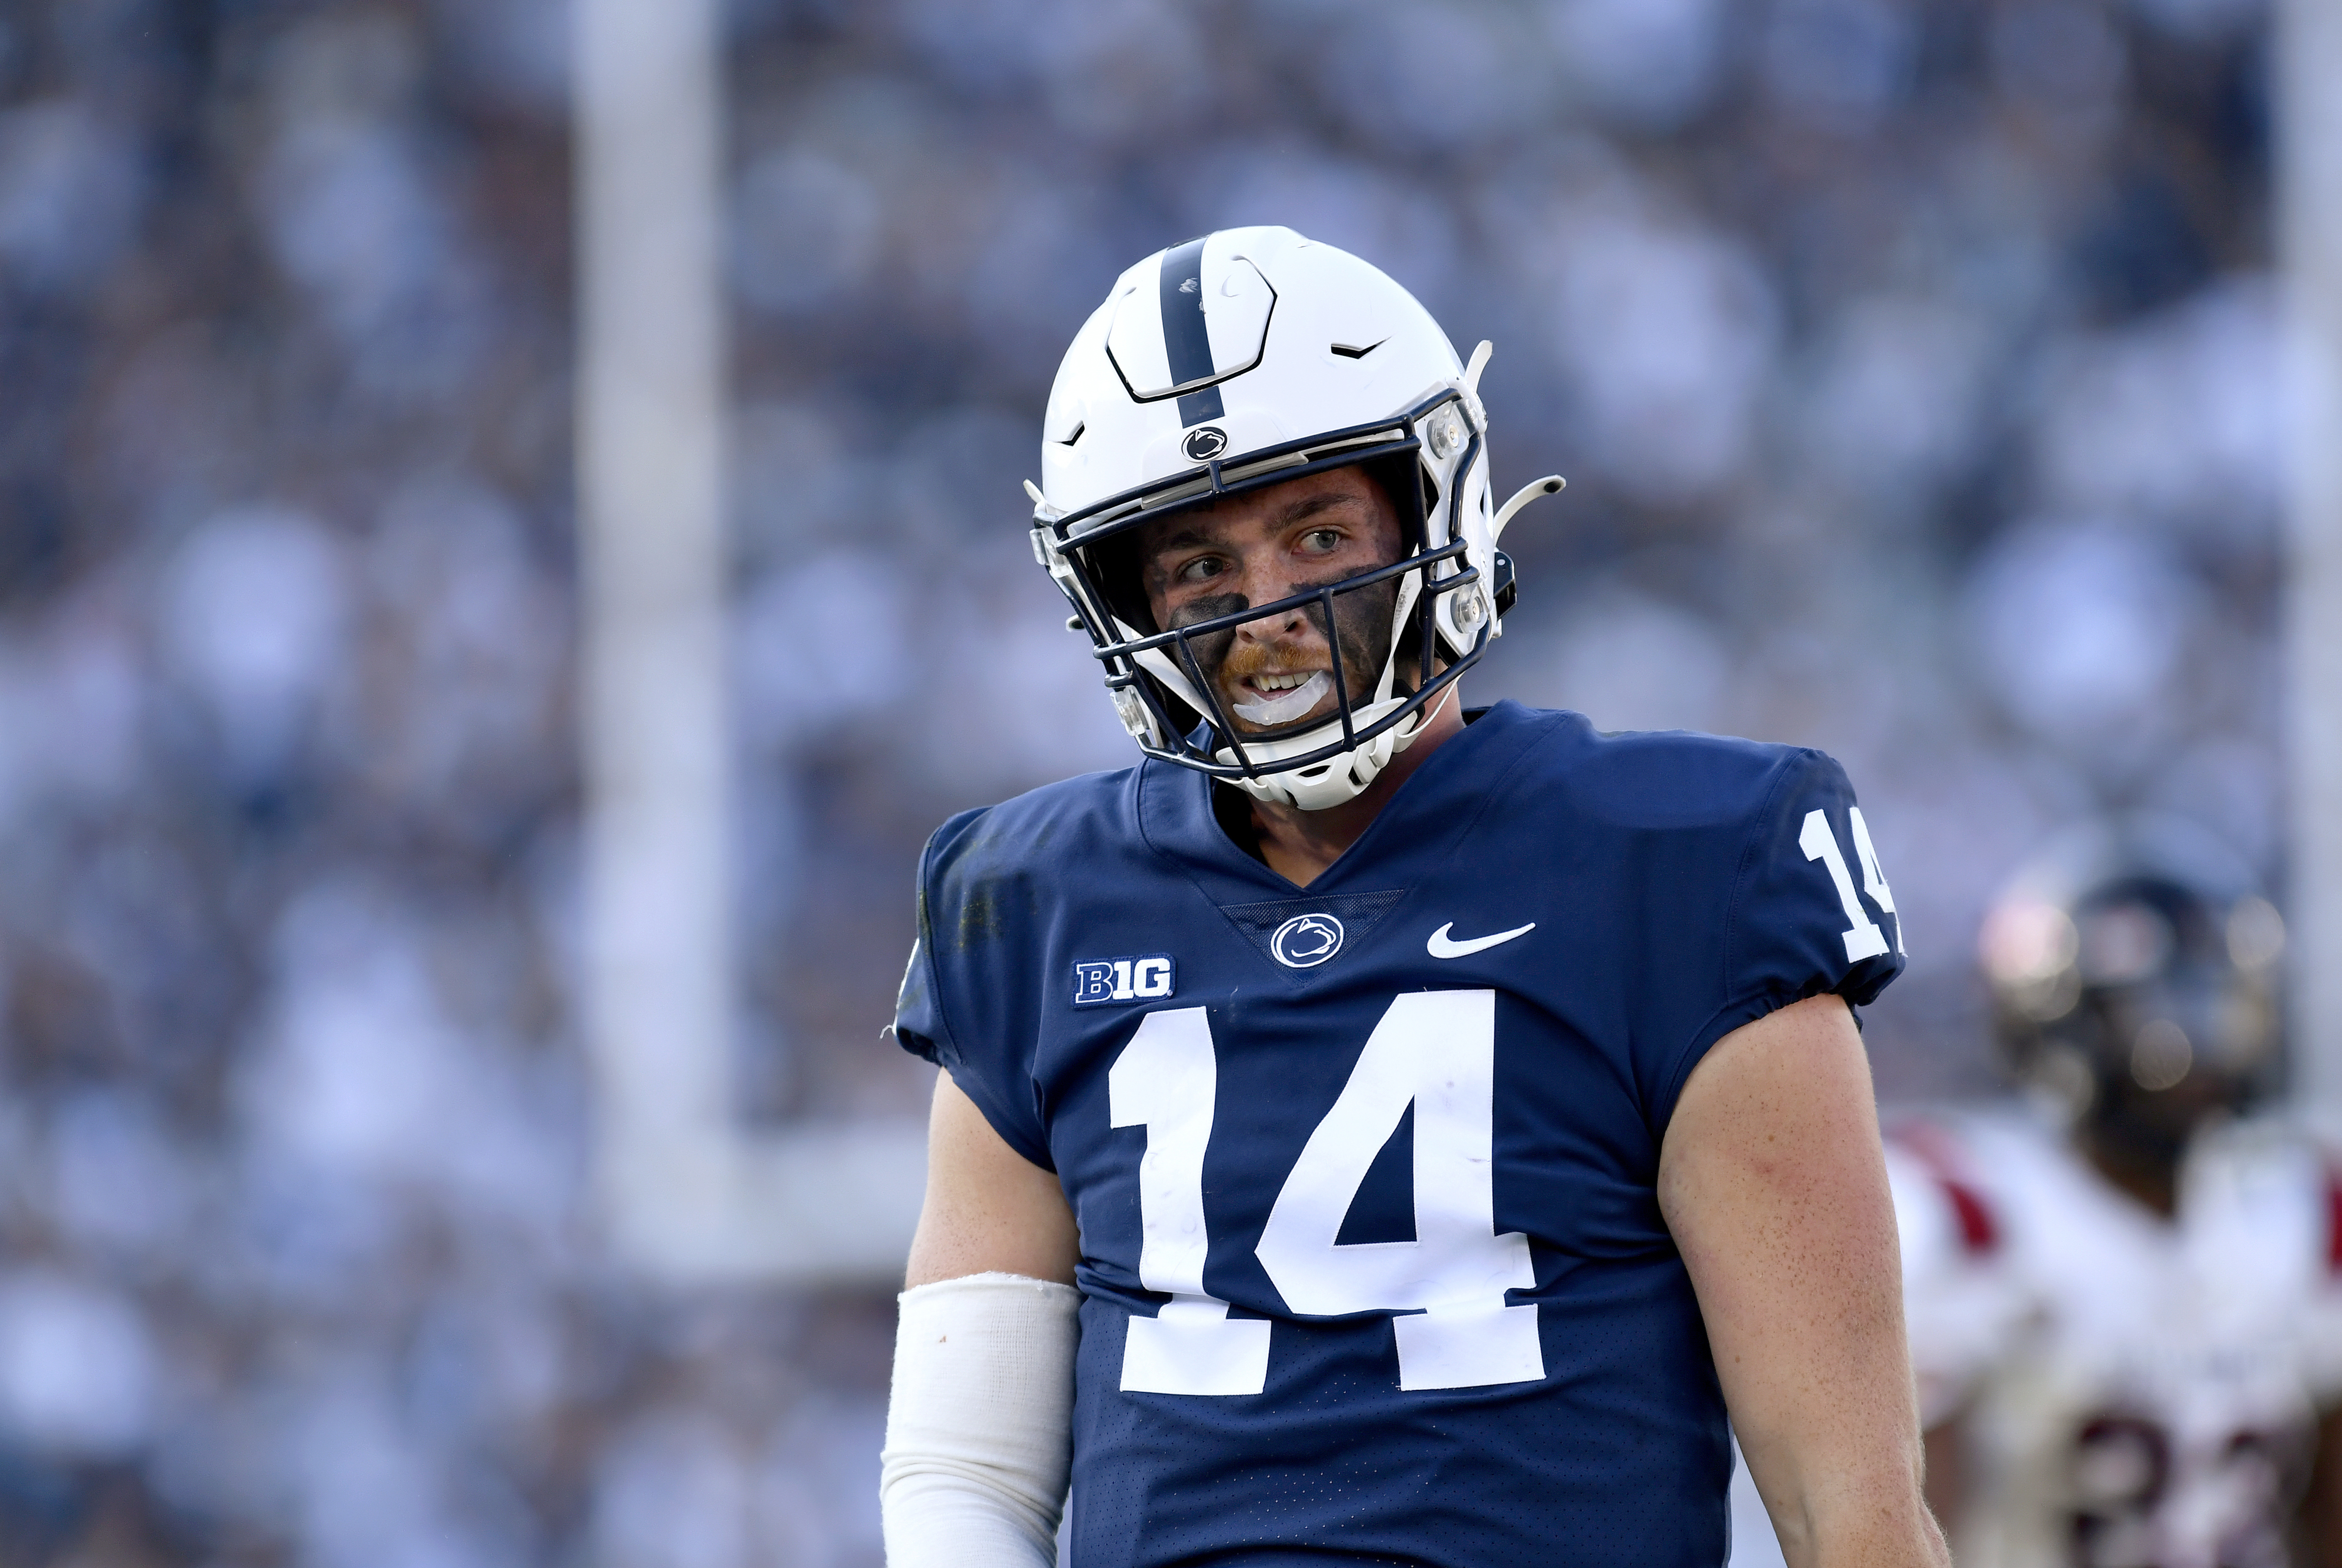 Penn State quarterback Sean Clifford celebrates after a long run for a first down during the Ball State Cardinals versus Penn State Nittany Lions game on September 11, 2021 at Beaver Stadium in University Park, PA.